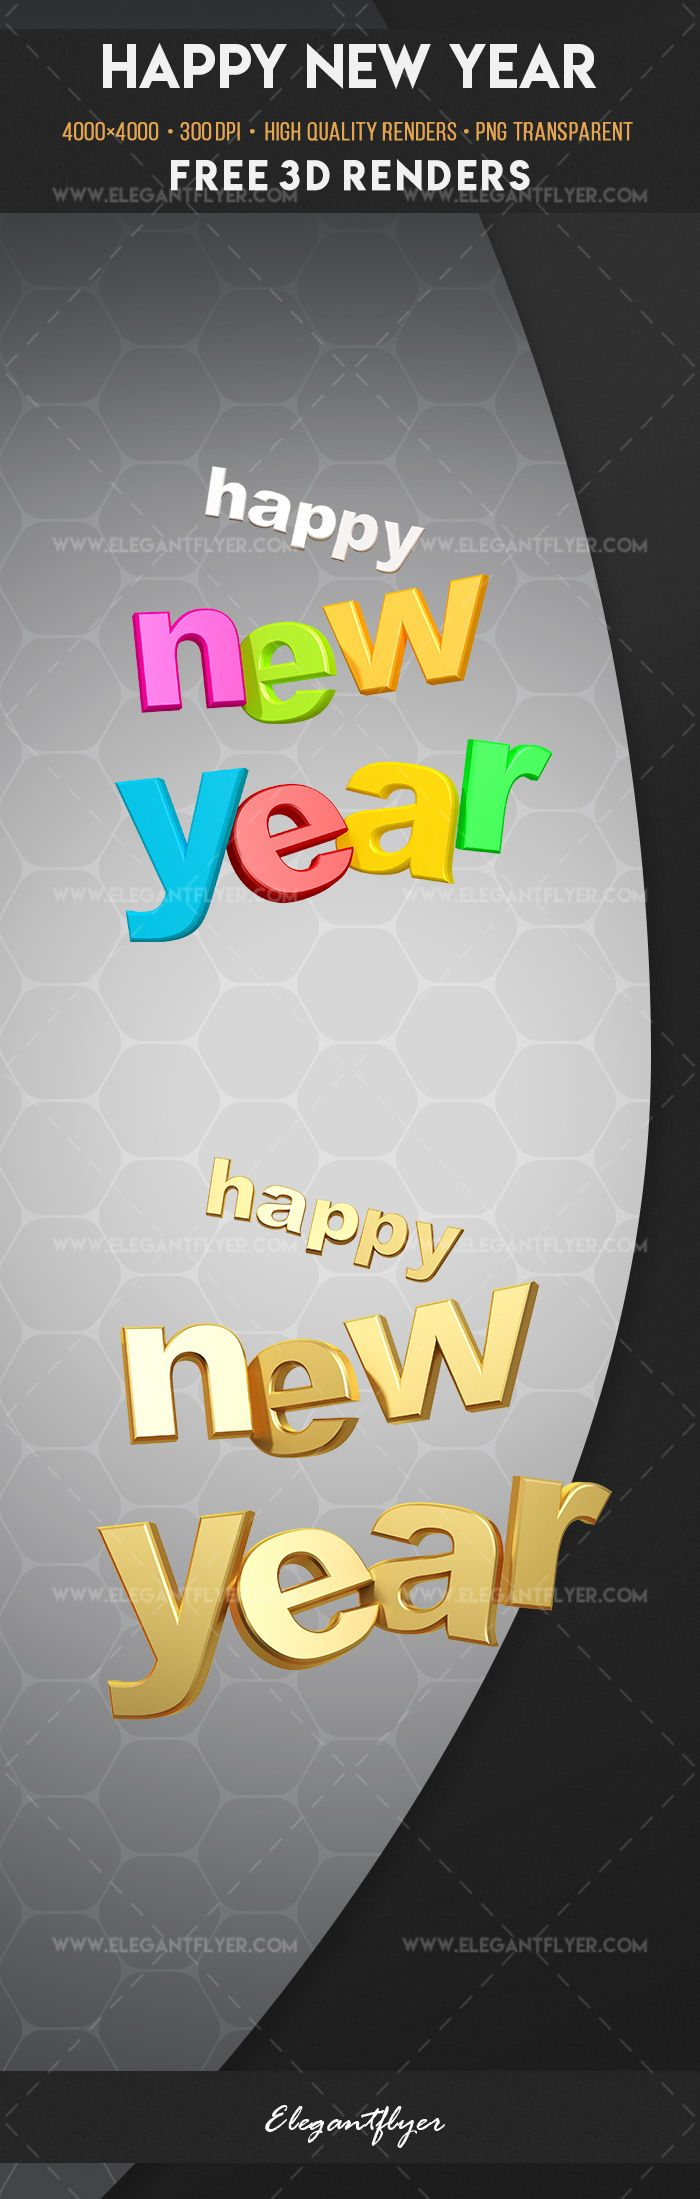 Happy New Year – Free 3d Render Templates